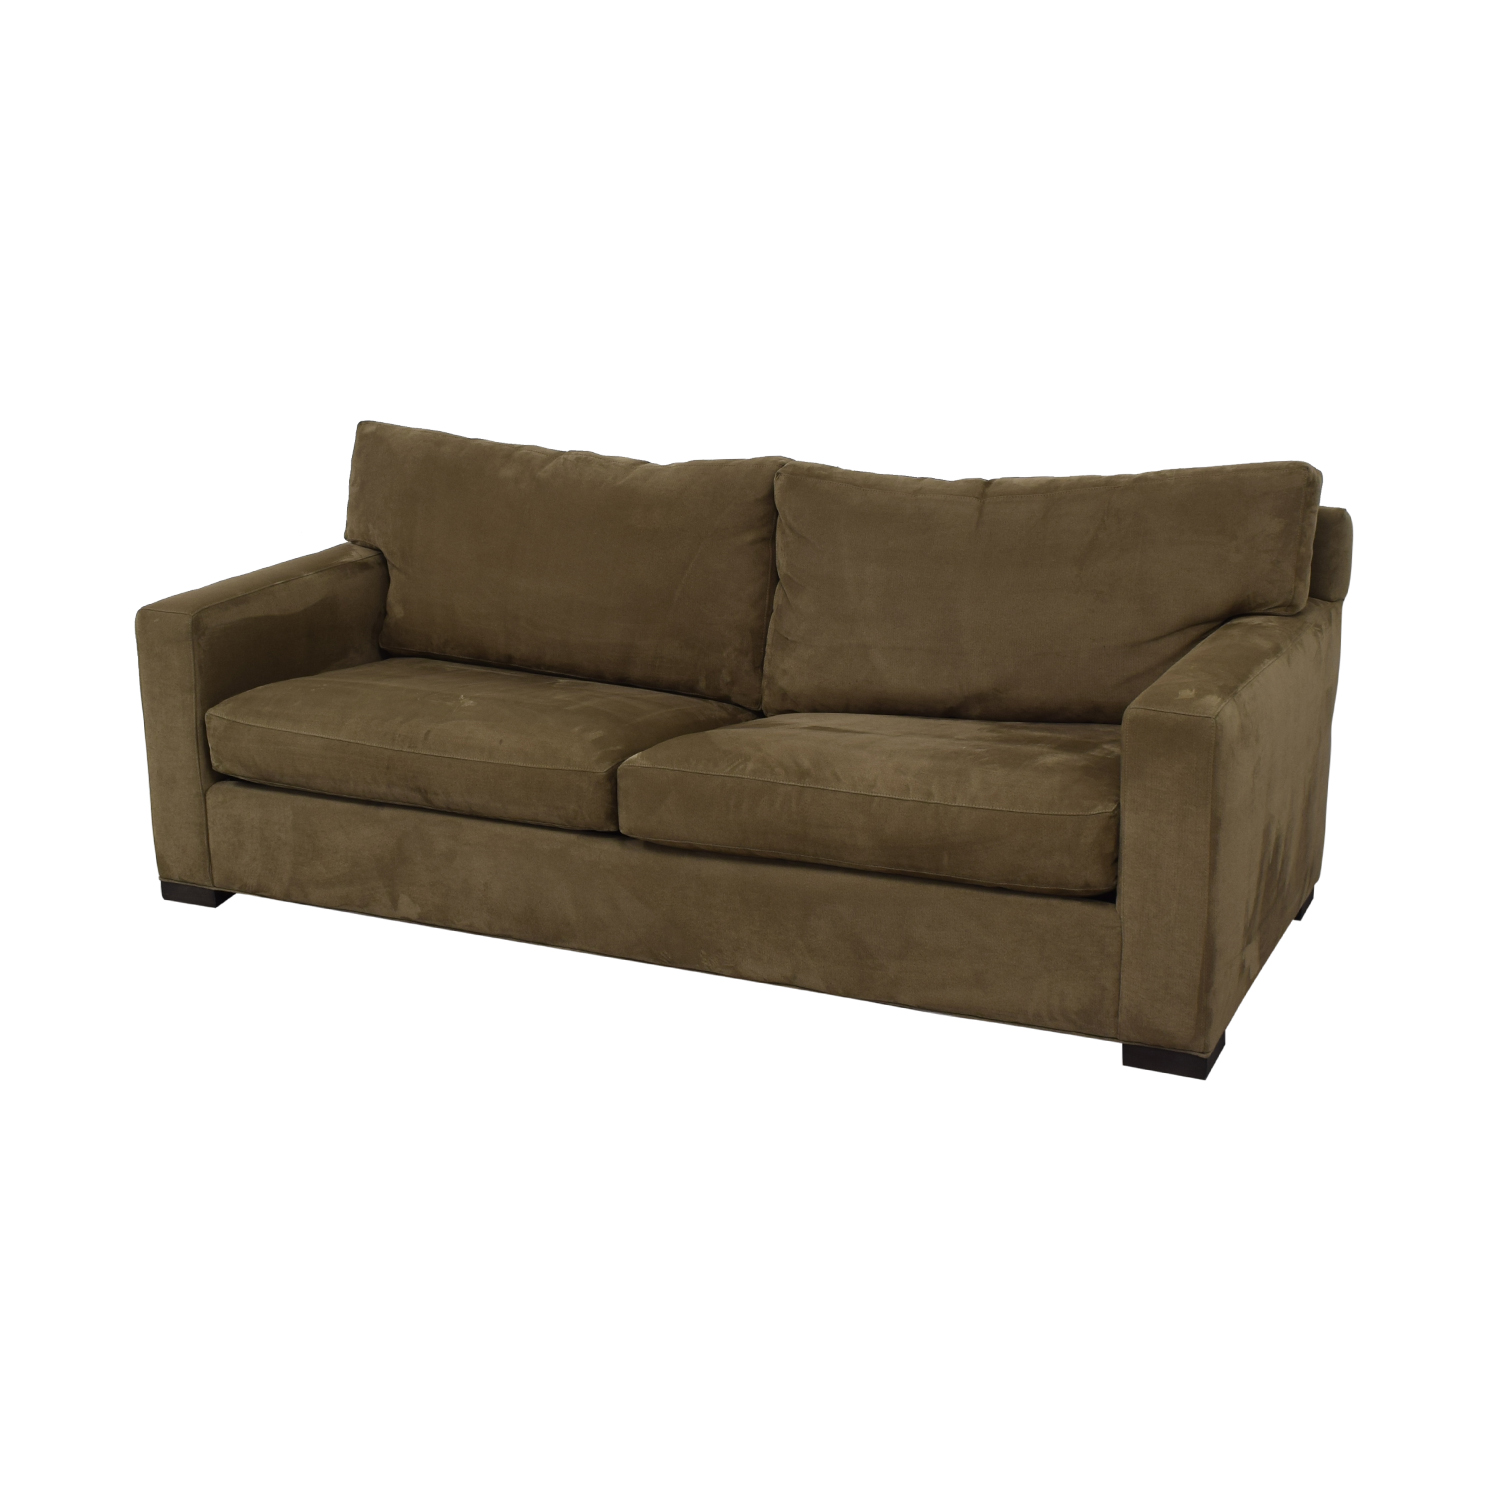 Crate & Barrel Crate & Barrel Axis II Queen Sleeper Sofa dimensions